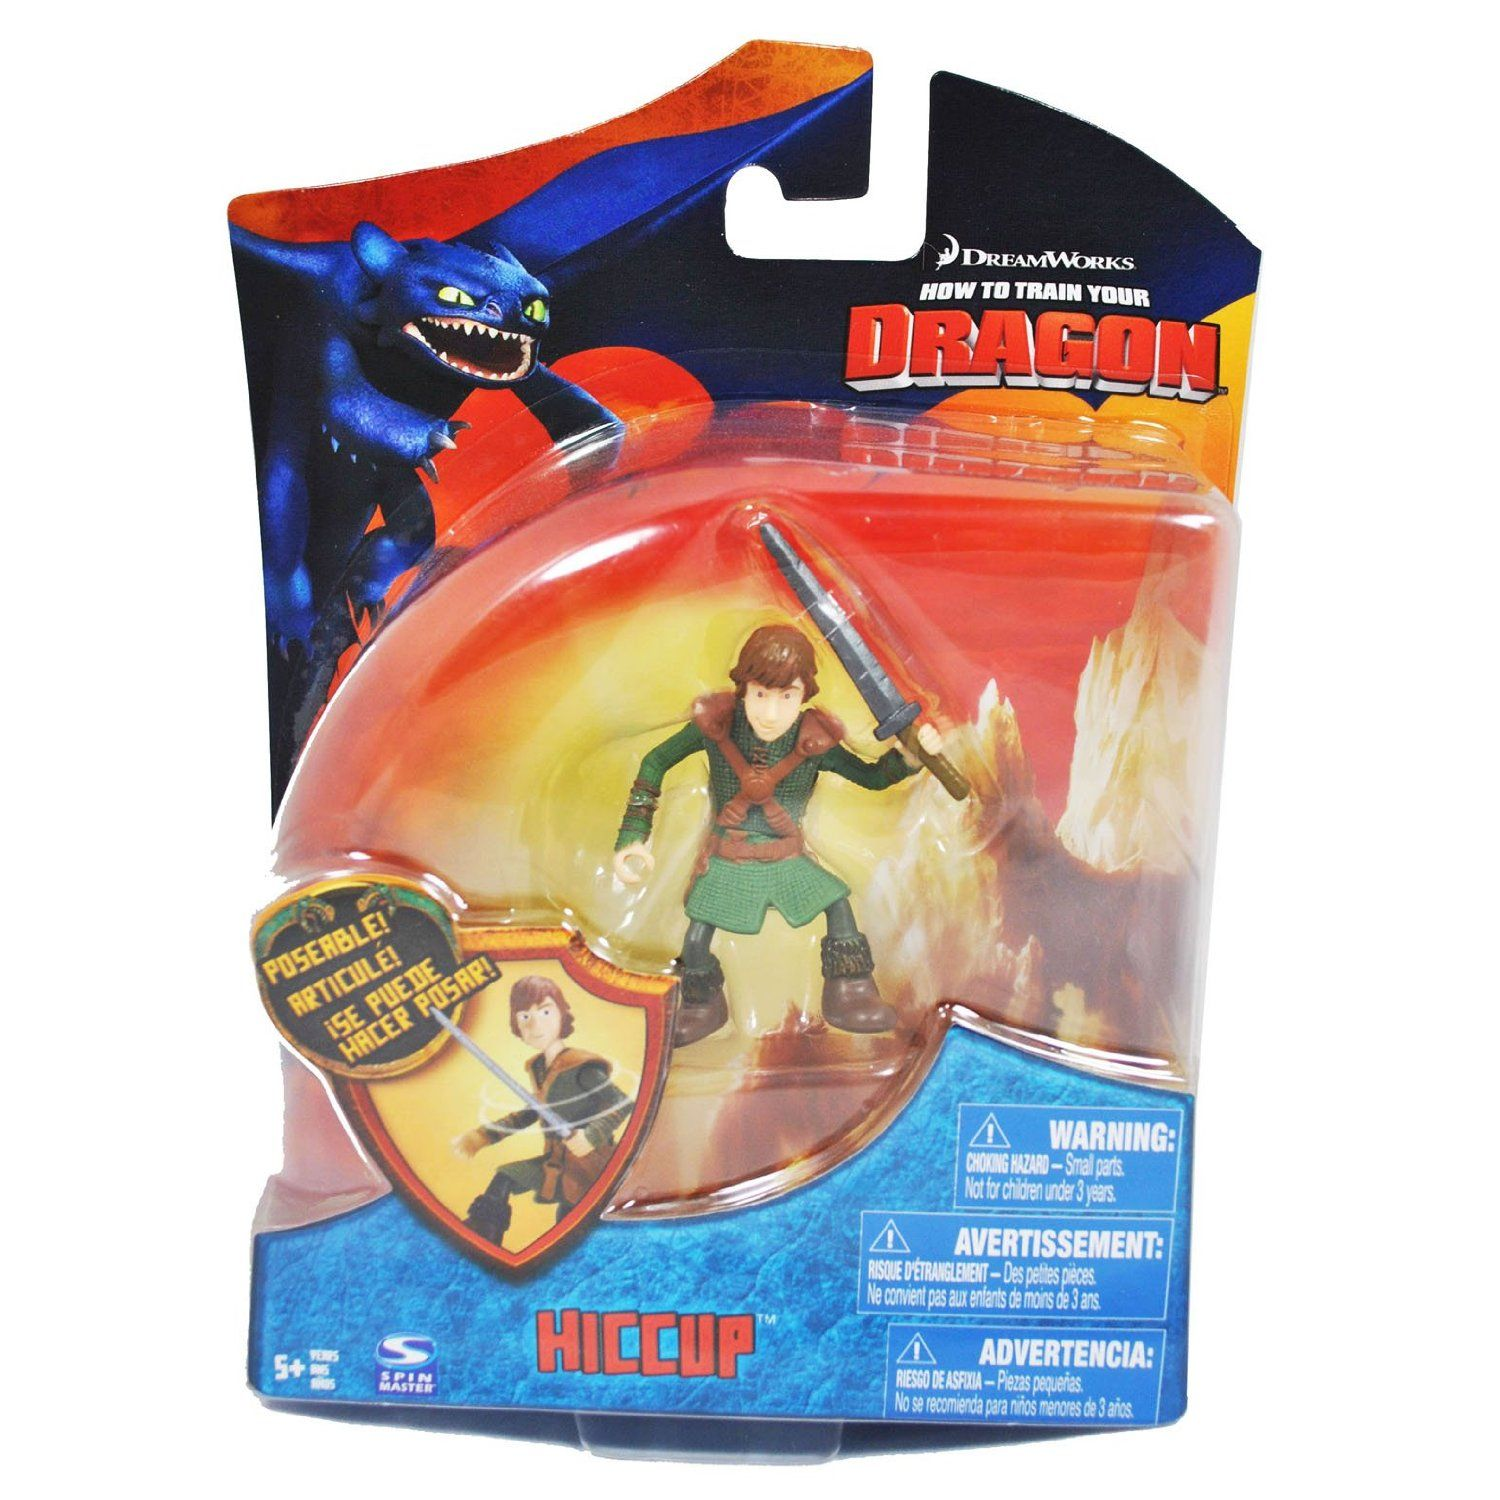 How to train your dragon action figures all brands how to train how to train your dragon action figures all brands how to train your dragon mjstoy ccuart Image collections